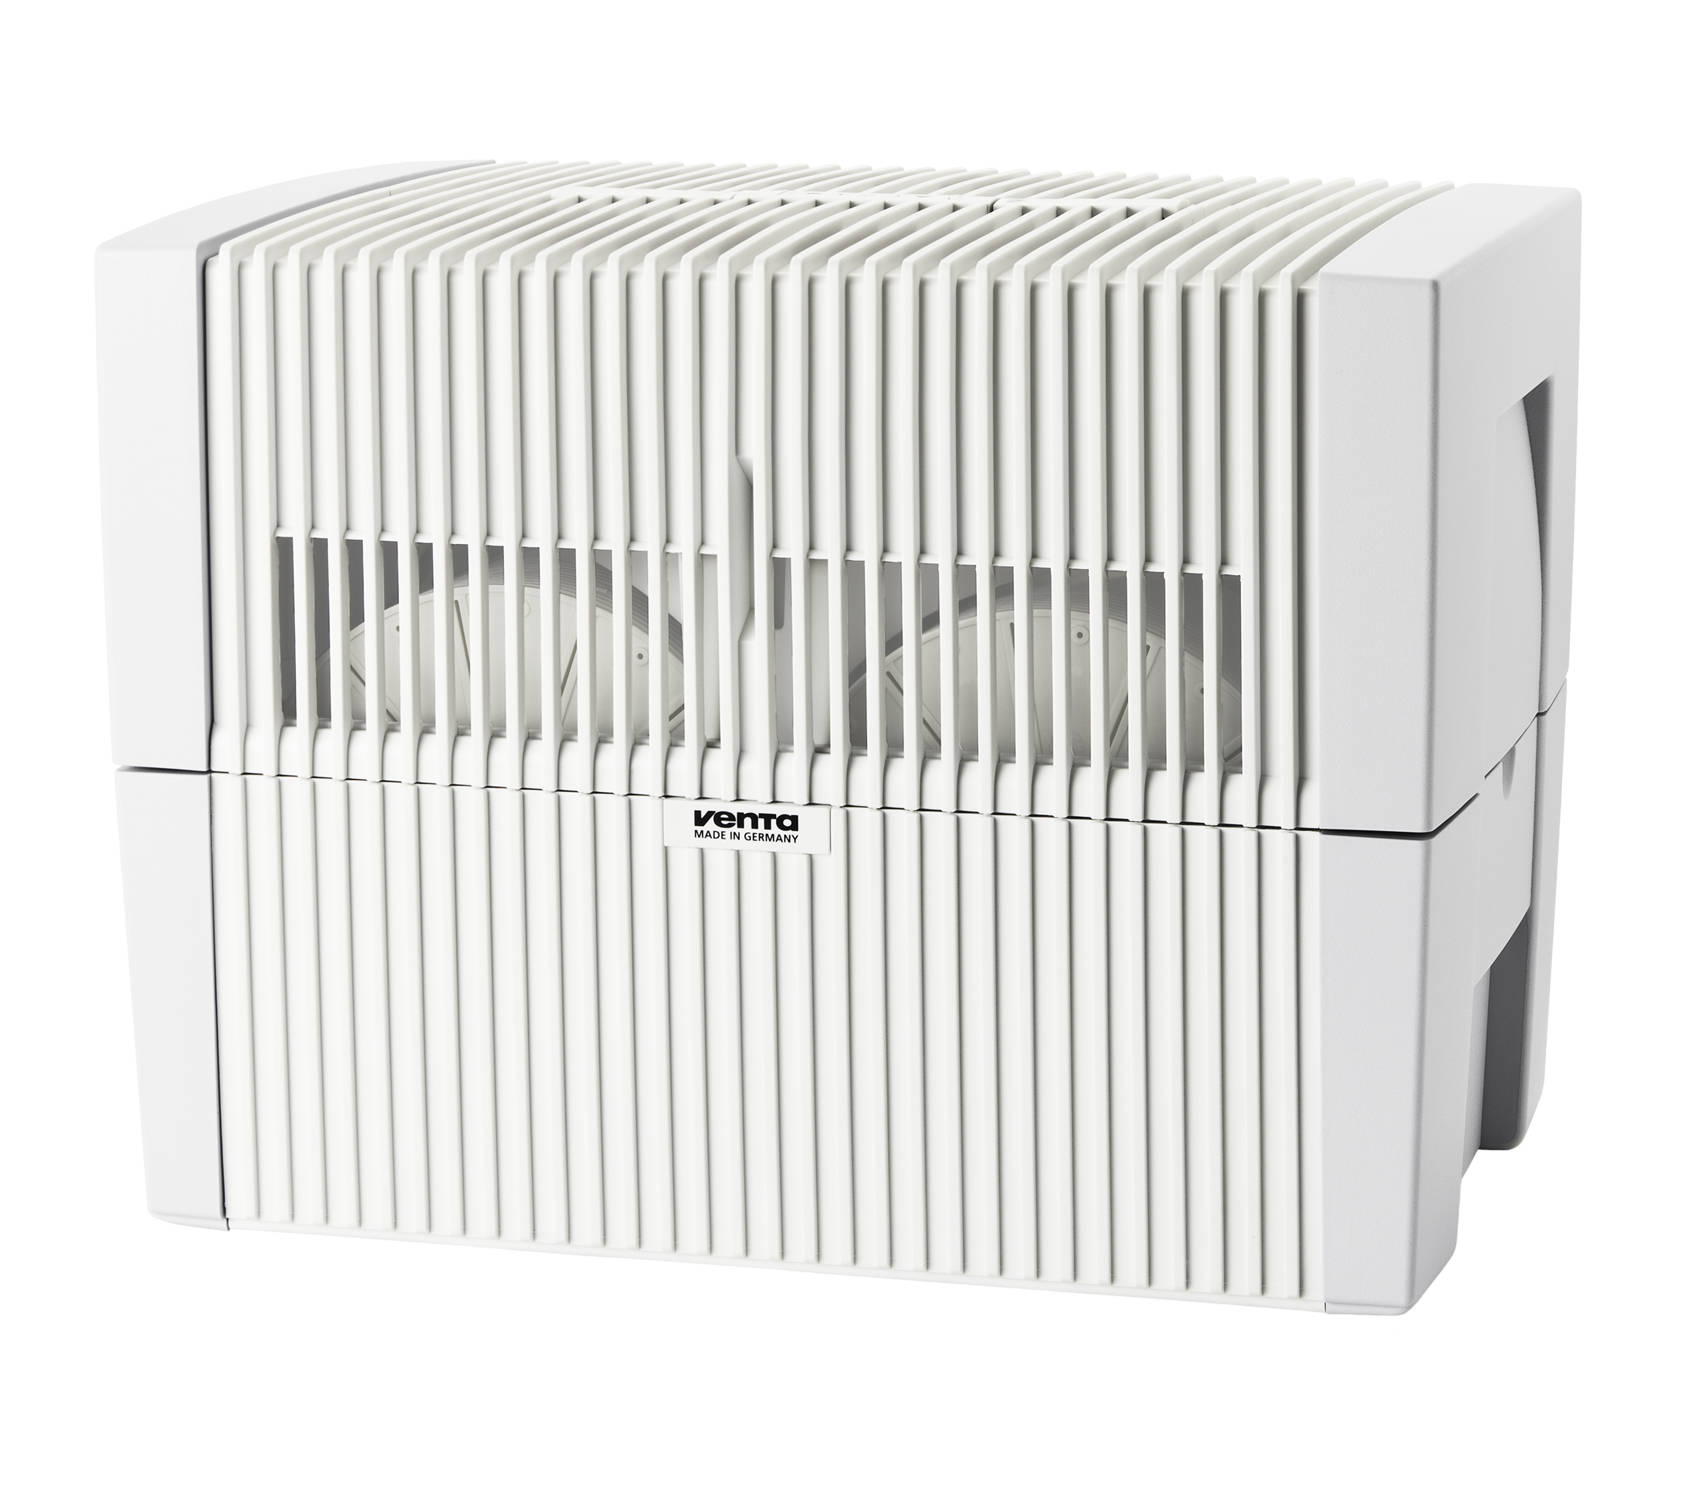 Humidifier   Air Purifier for Life 400 Sq. Ft. Walmart.com #6B6B60